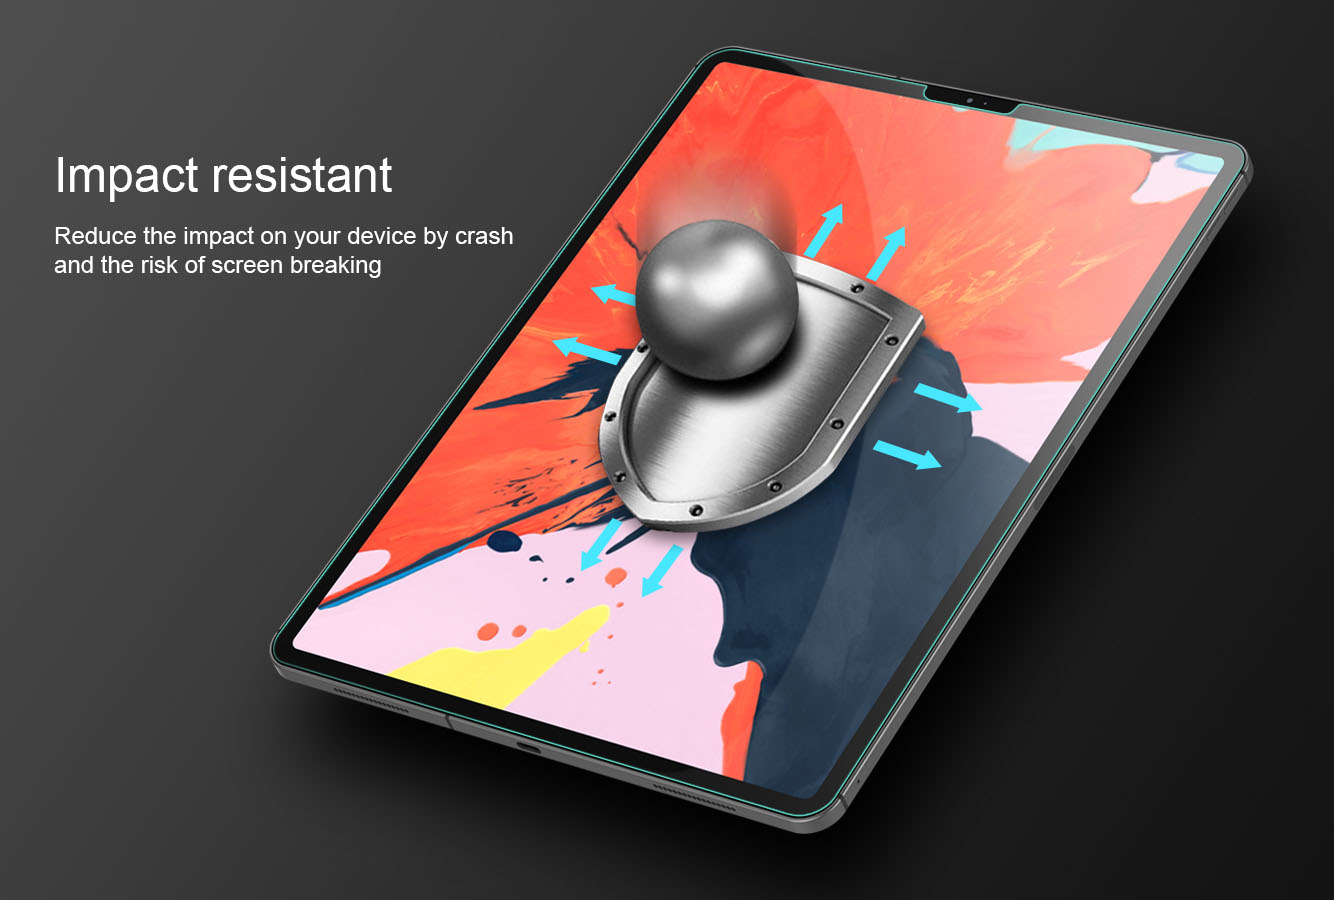 Apple iPad Pro 12.9 (2018) screen protector